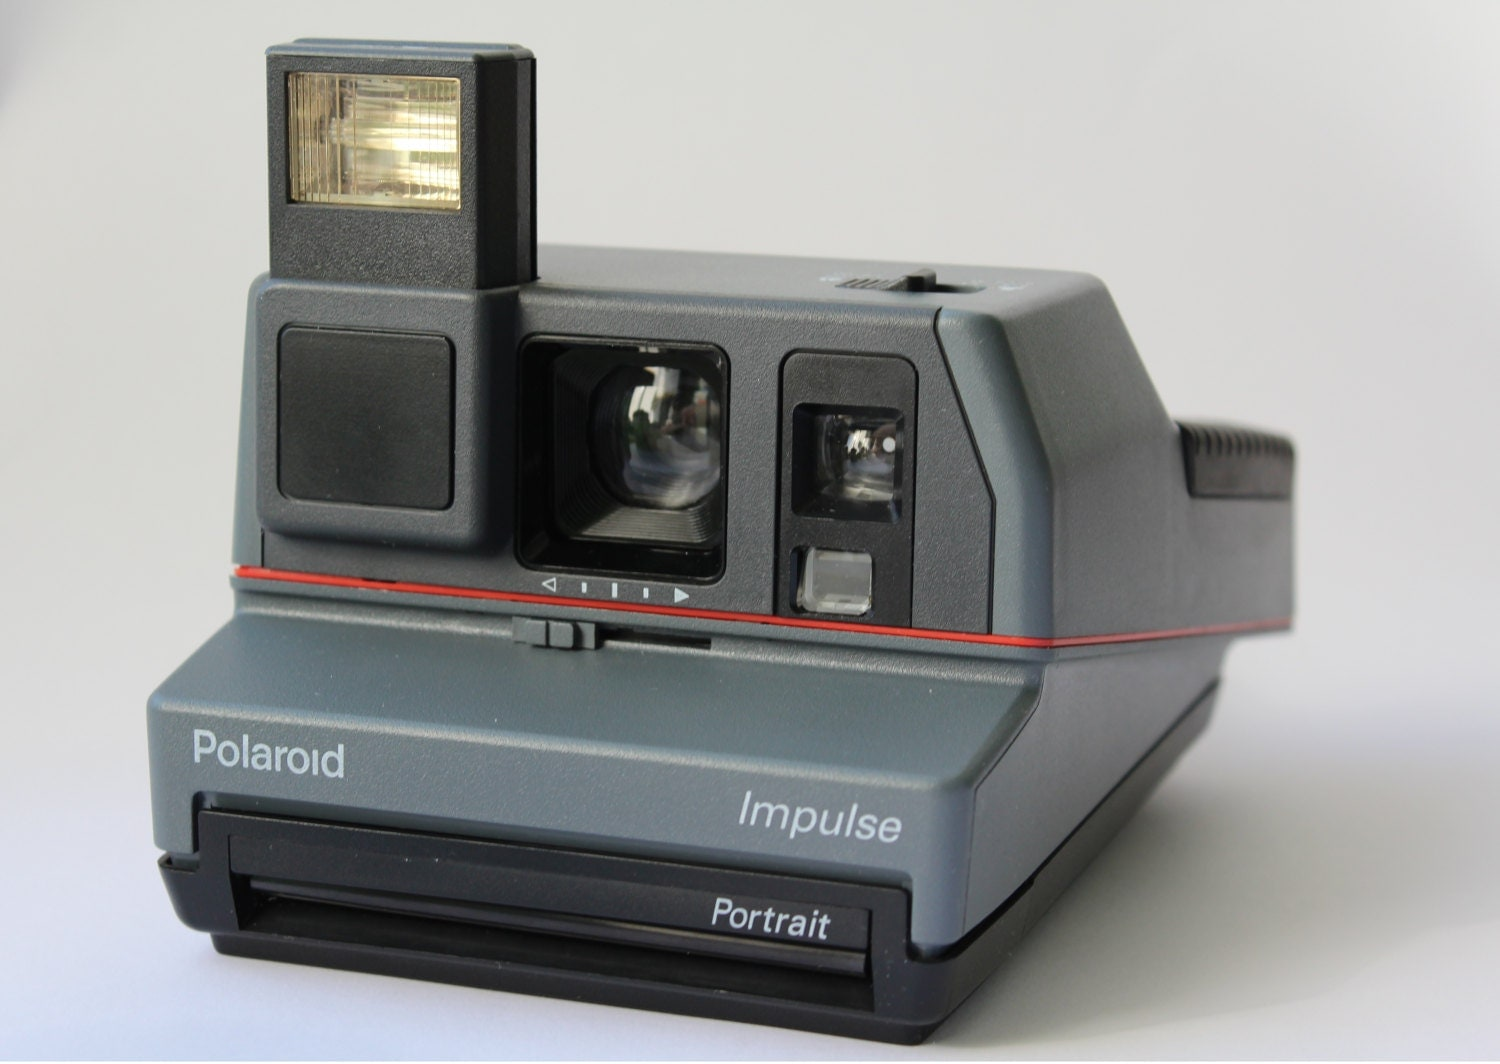 Bien connu Vintage Polaroid Impulse Portrait 600 Camera, Instant photo  JO63